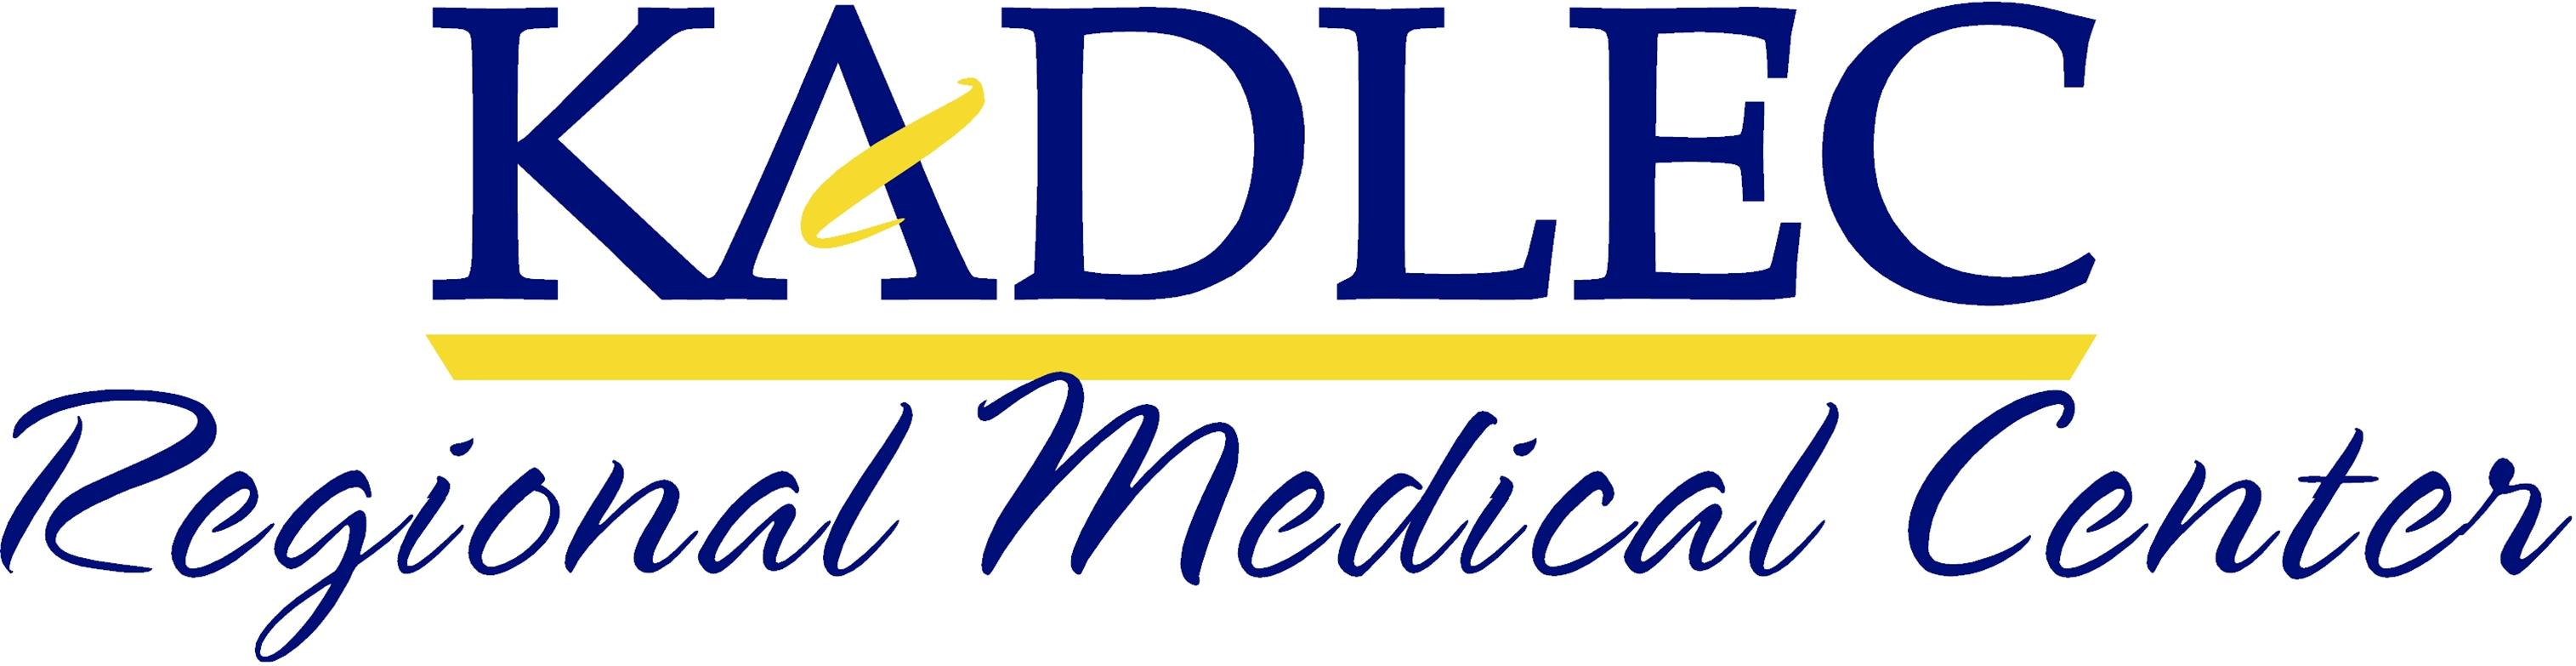 Kadlac Medical Center